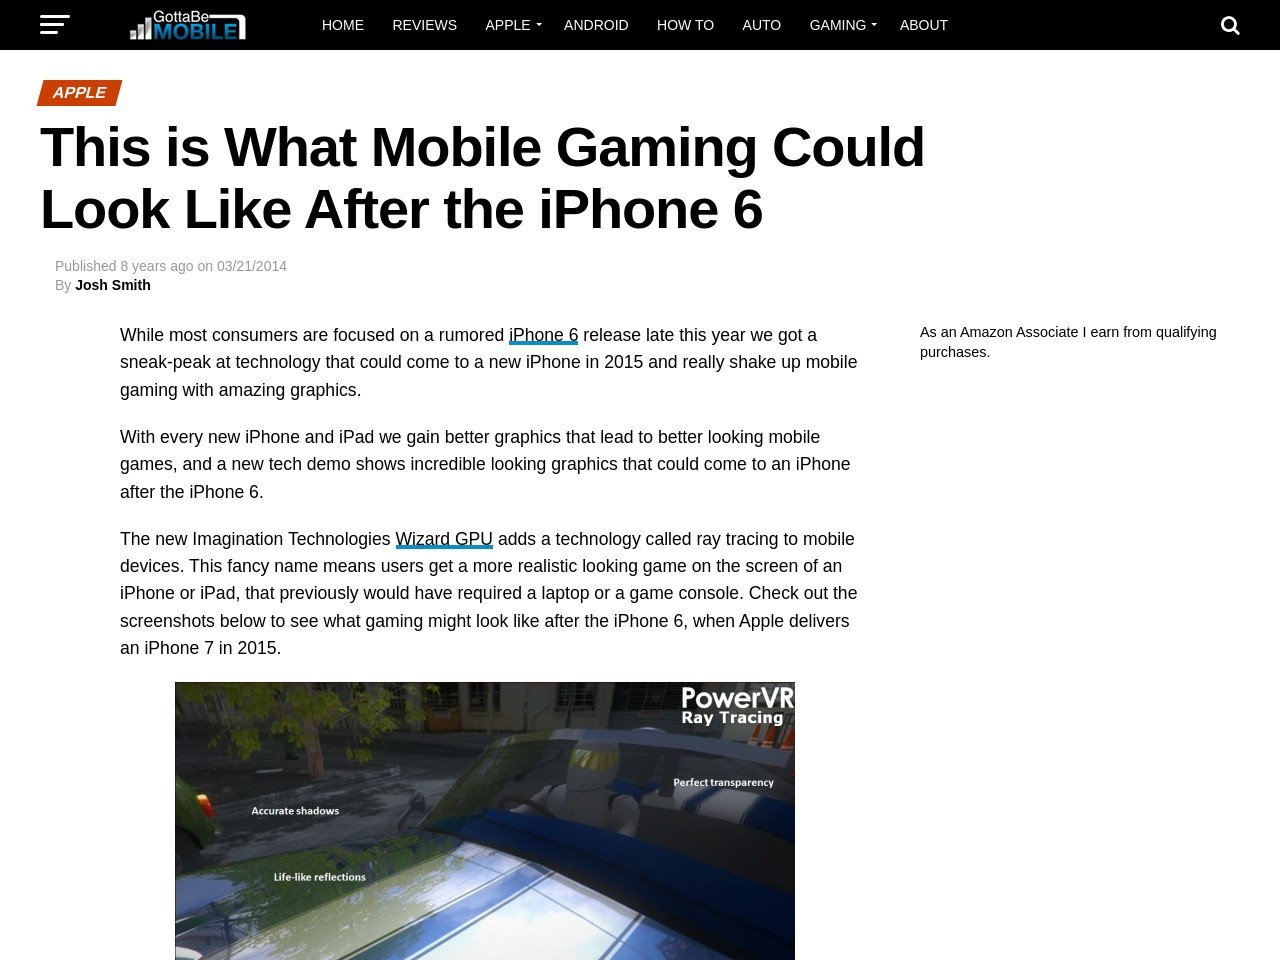 This is What Mobile Gaming Could Look Like After the iPhone 6